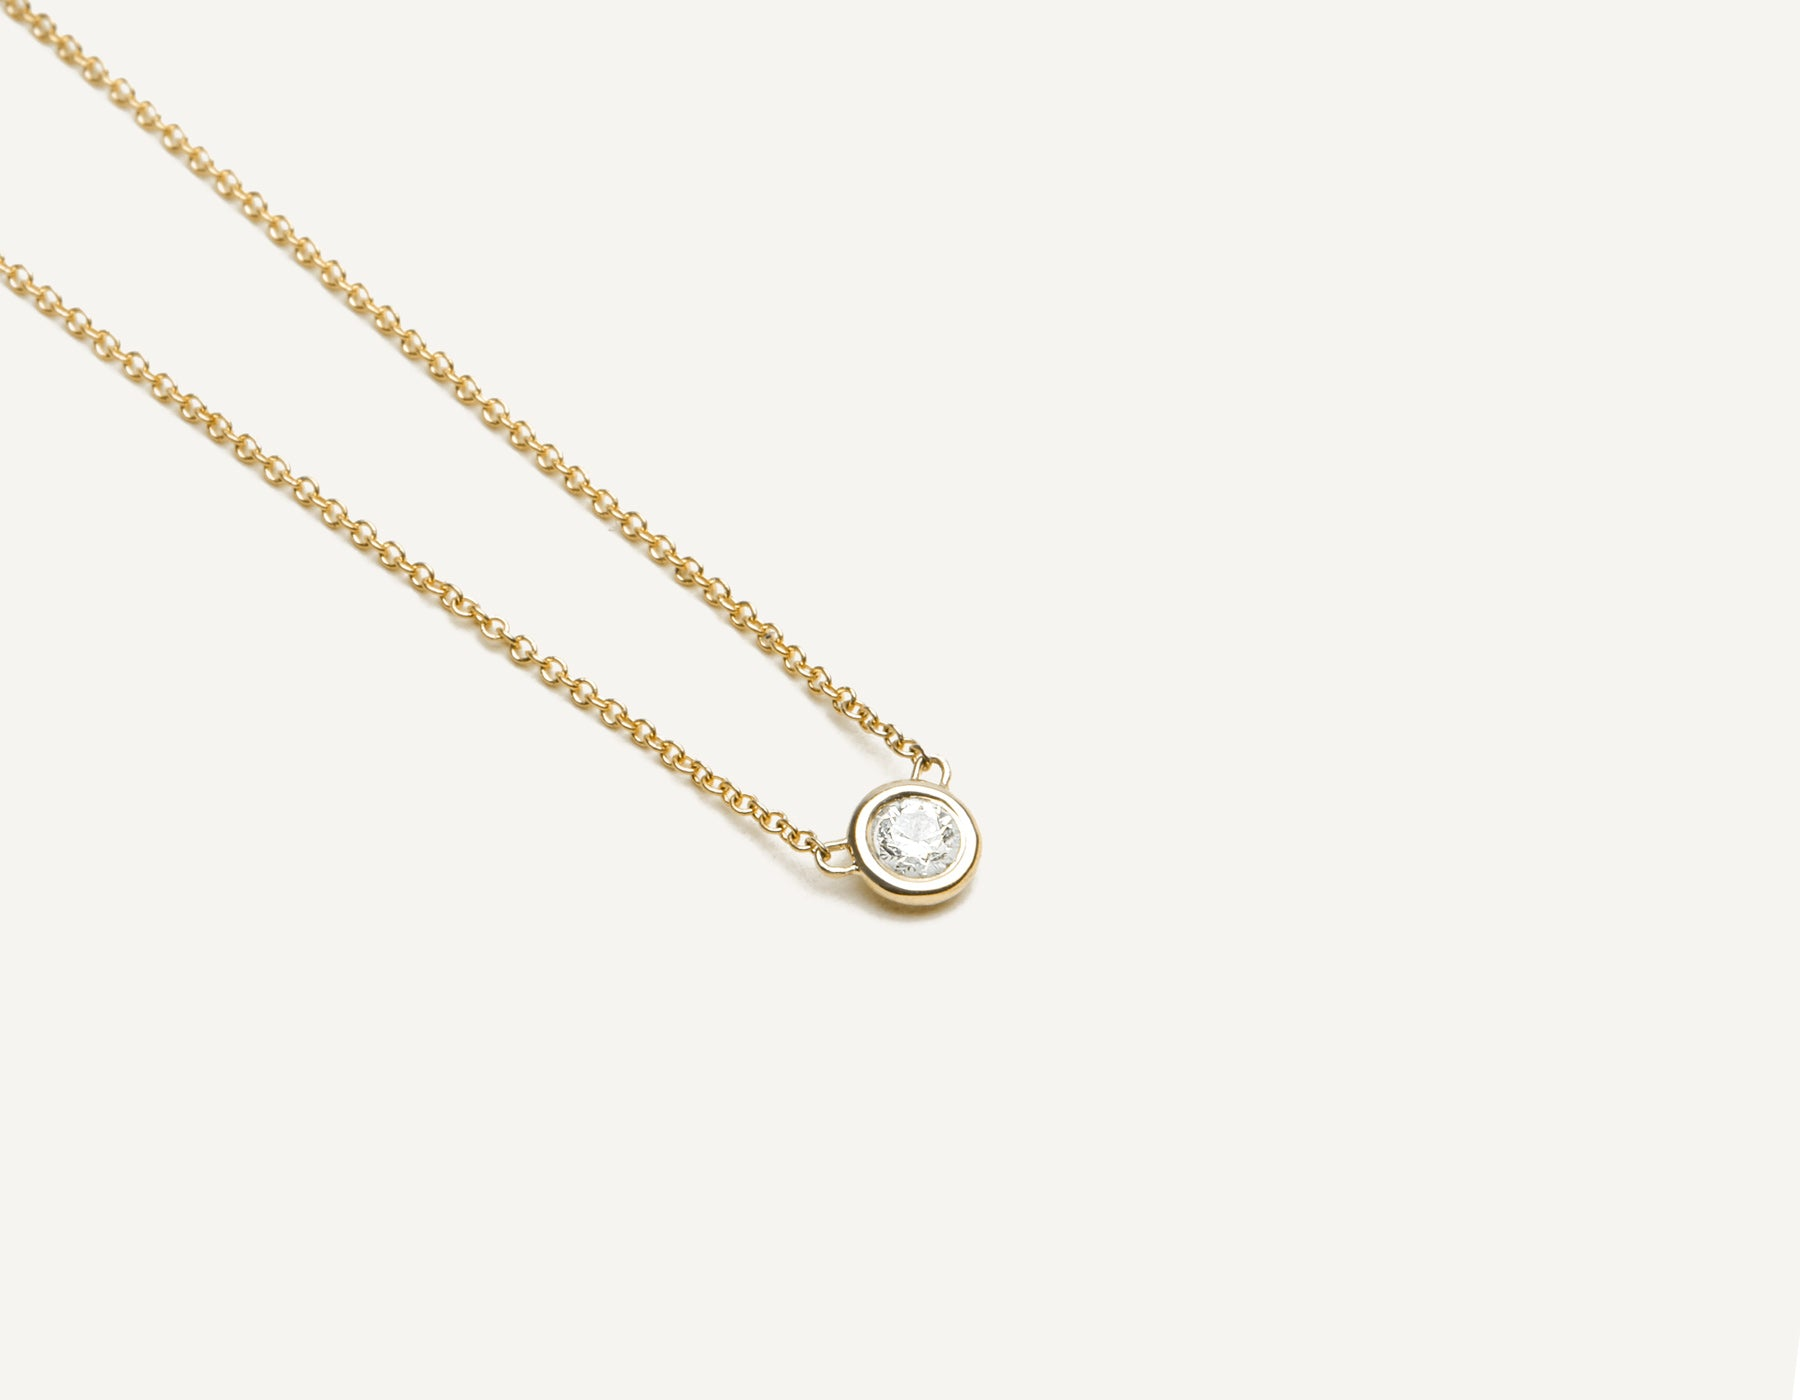 Classic minimalist 14k solid gold .1 carat round brilliant cut Solitaire Diamond Necklace on delicate chain Vrai & Oro, 14K Yellow Gold